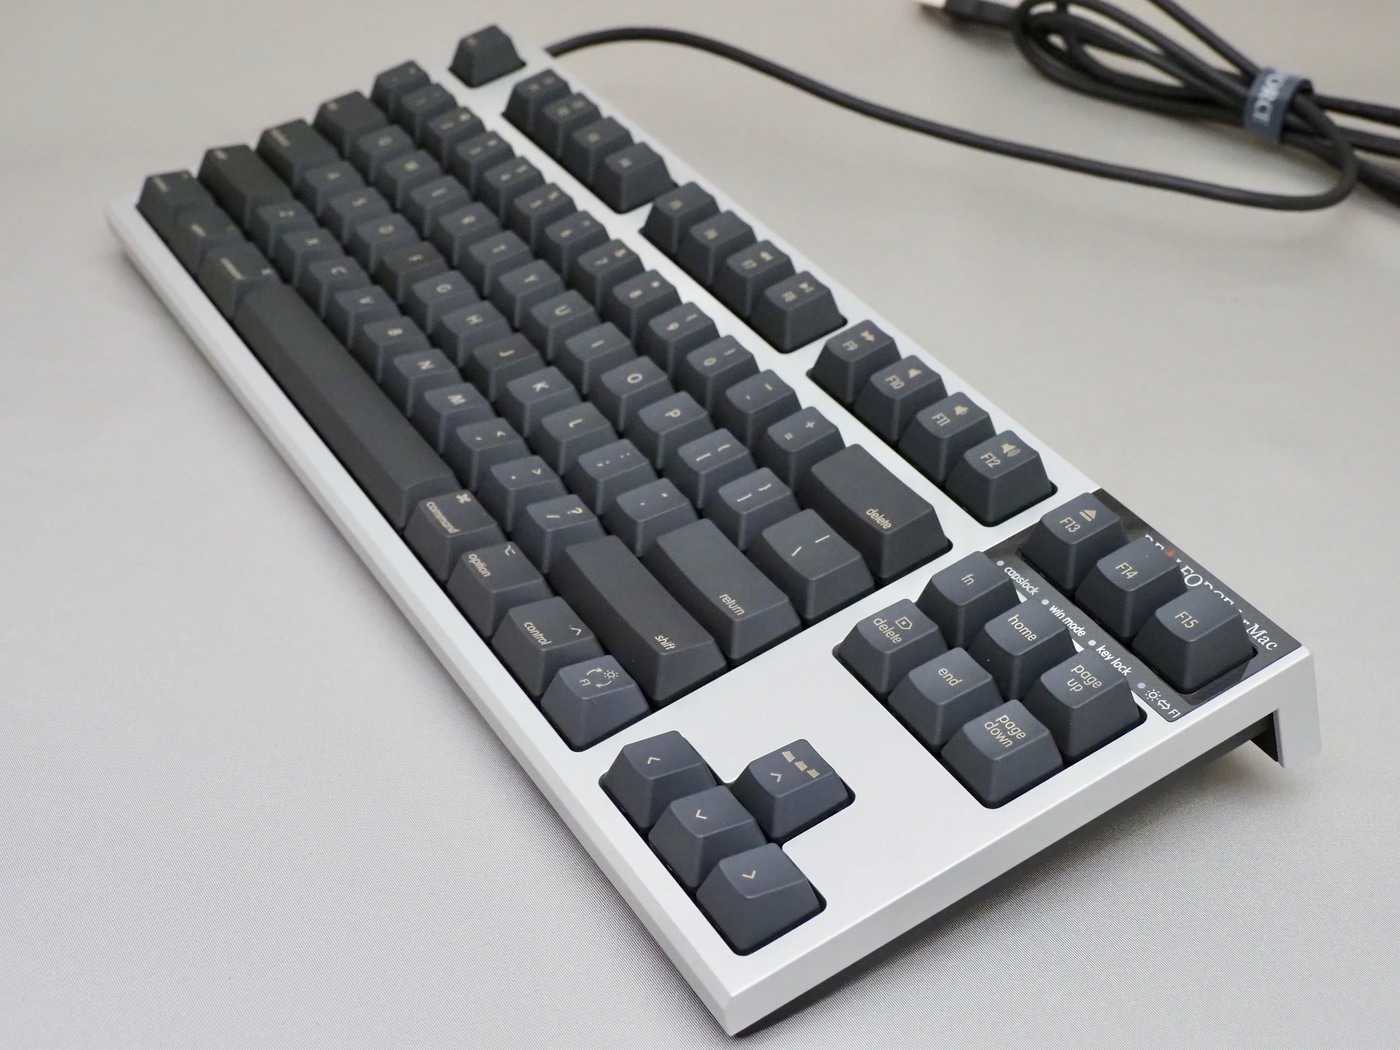 realforce-tkl-for-mac-pfu-limited-edition-review_00029